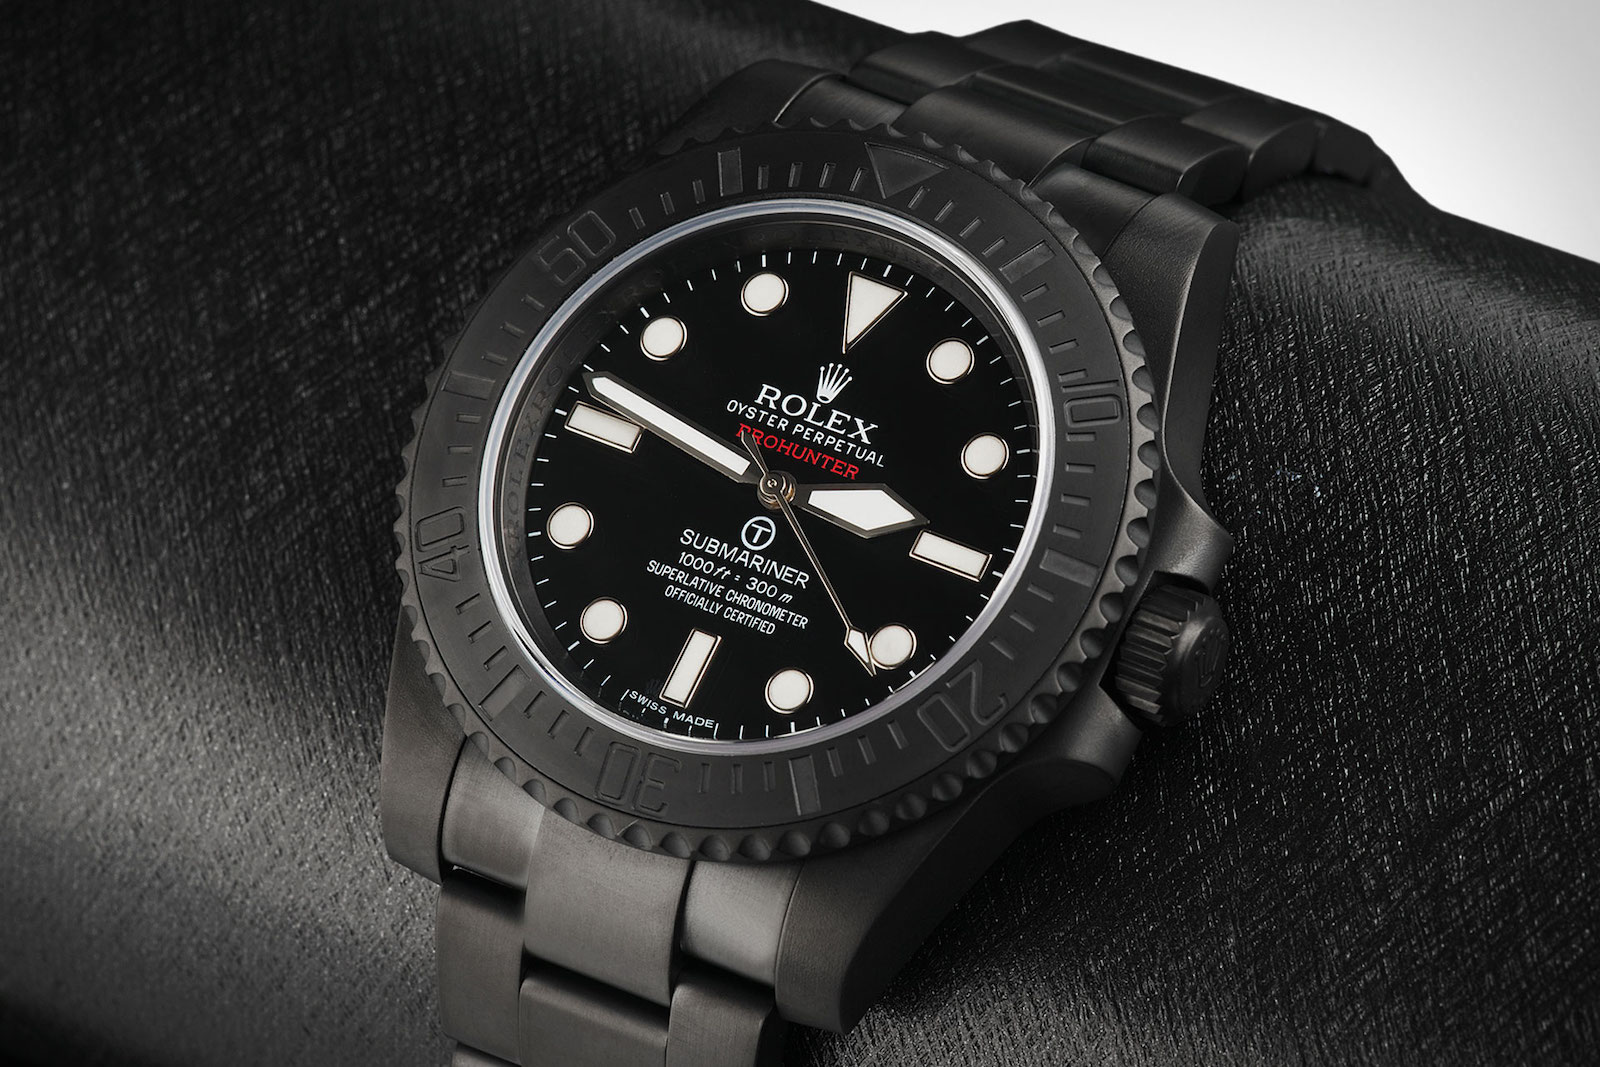 Limited to Only 100 Pieces: The Pro Hunter Rolex Submariner Military Watch 3